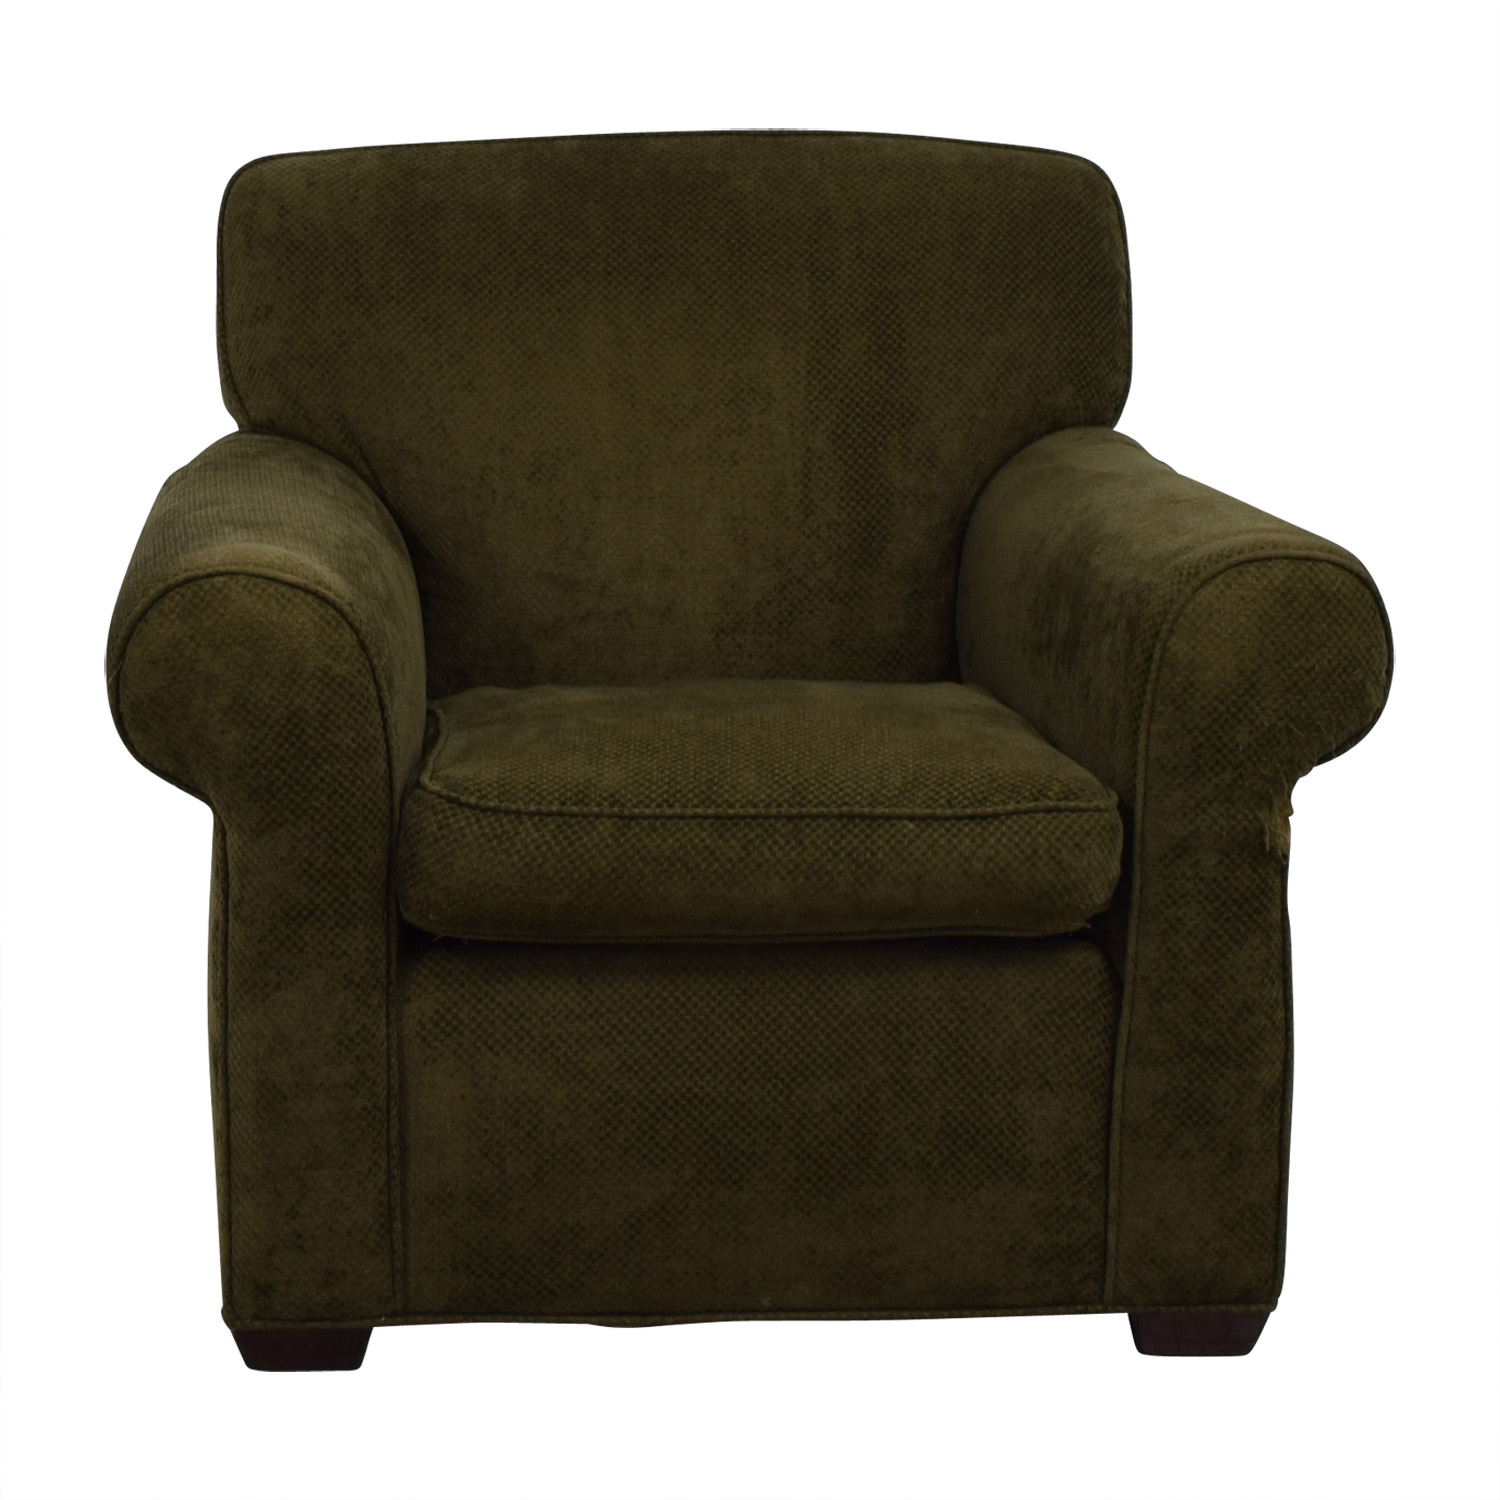 Large Olive Green Accent Chair / Chairs ...